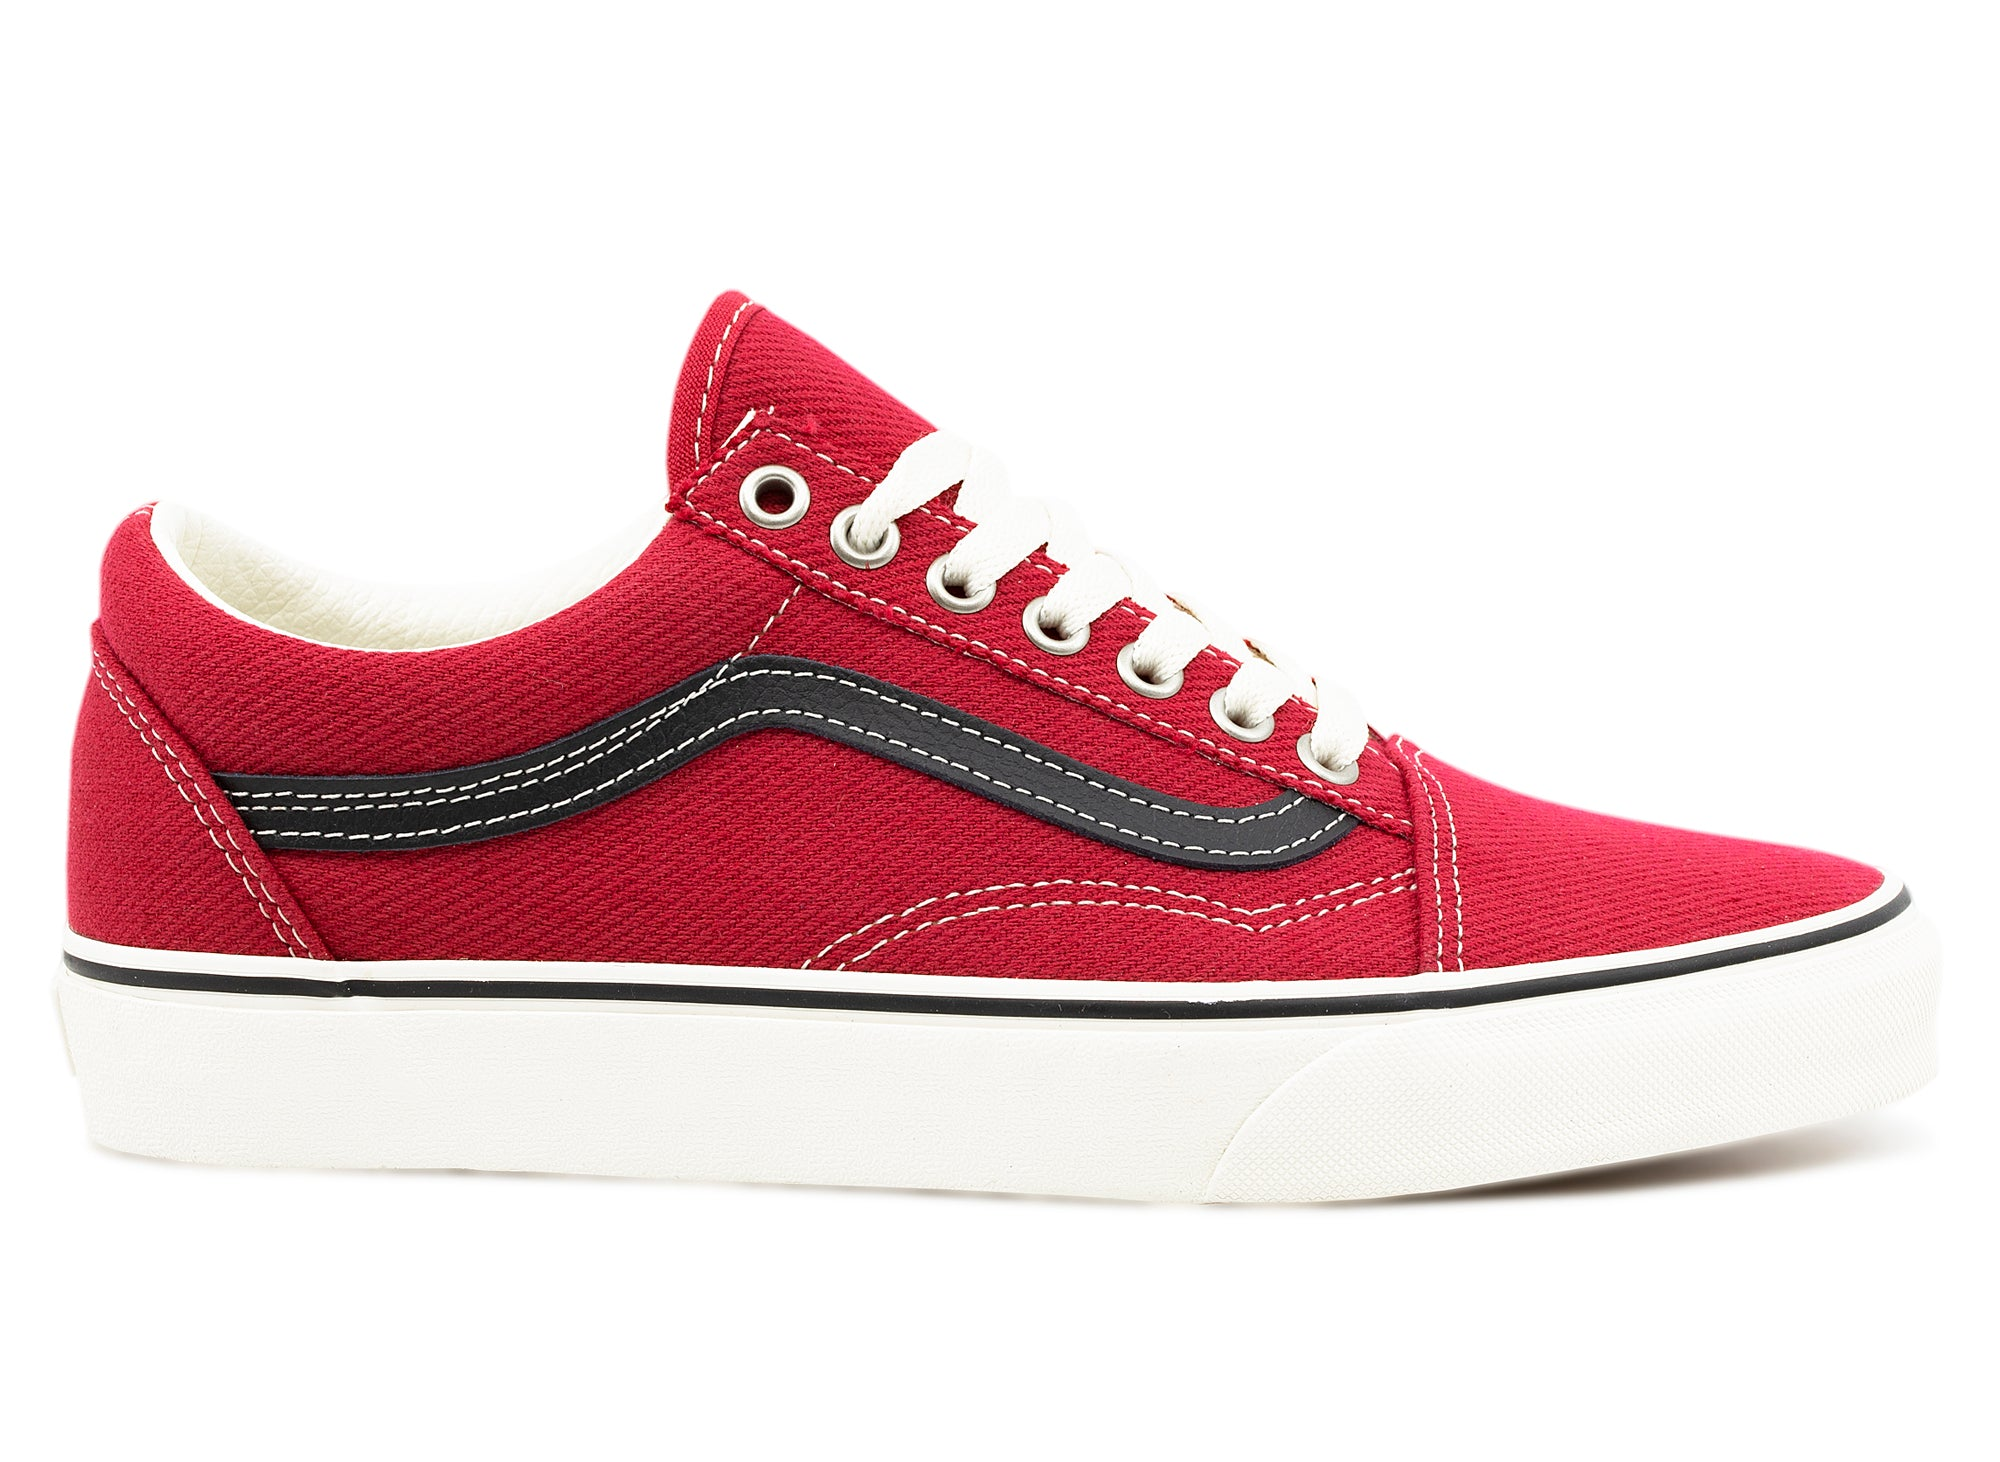 Vans Earth Old Skool 'Chili Pepper' xld